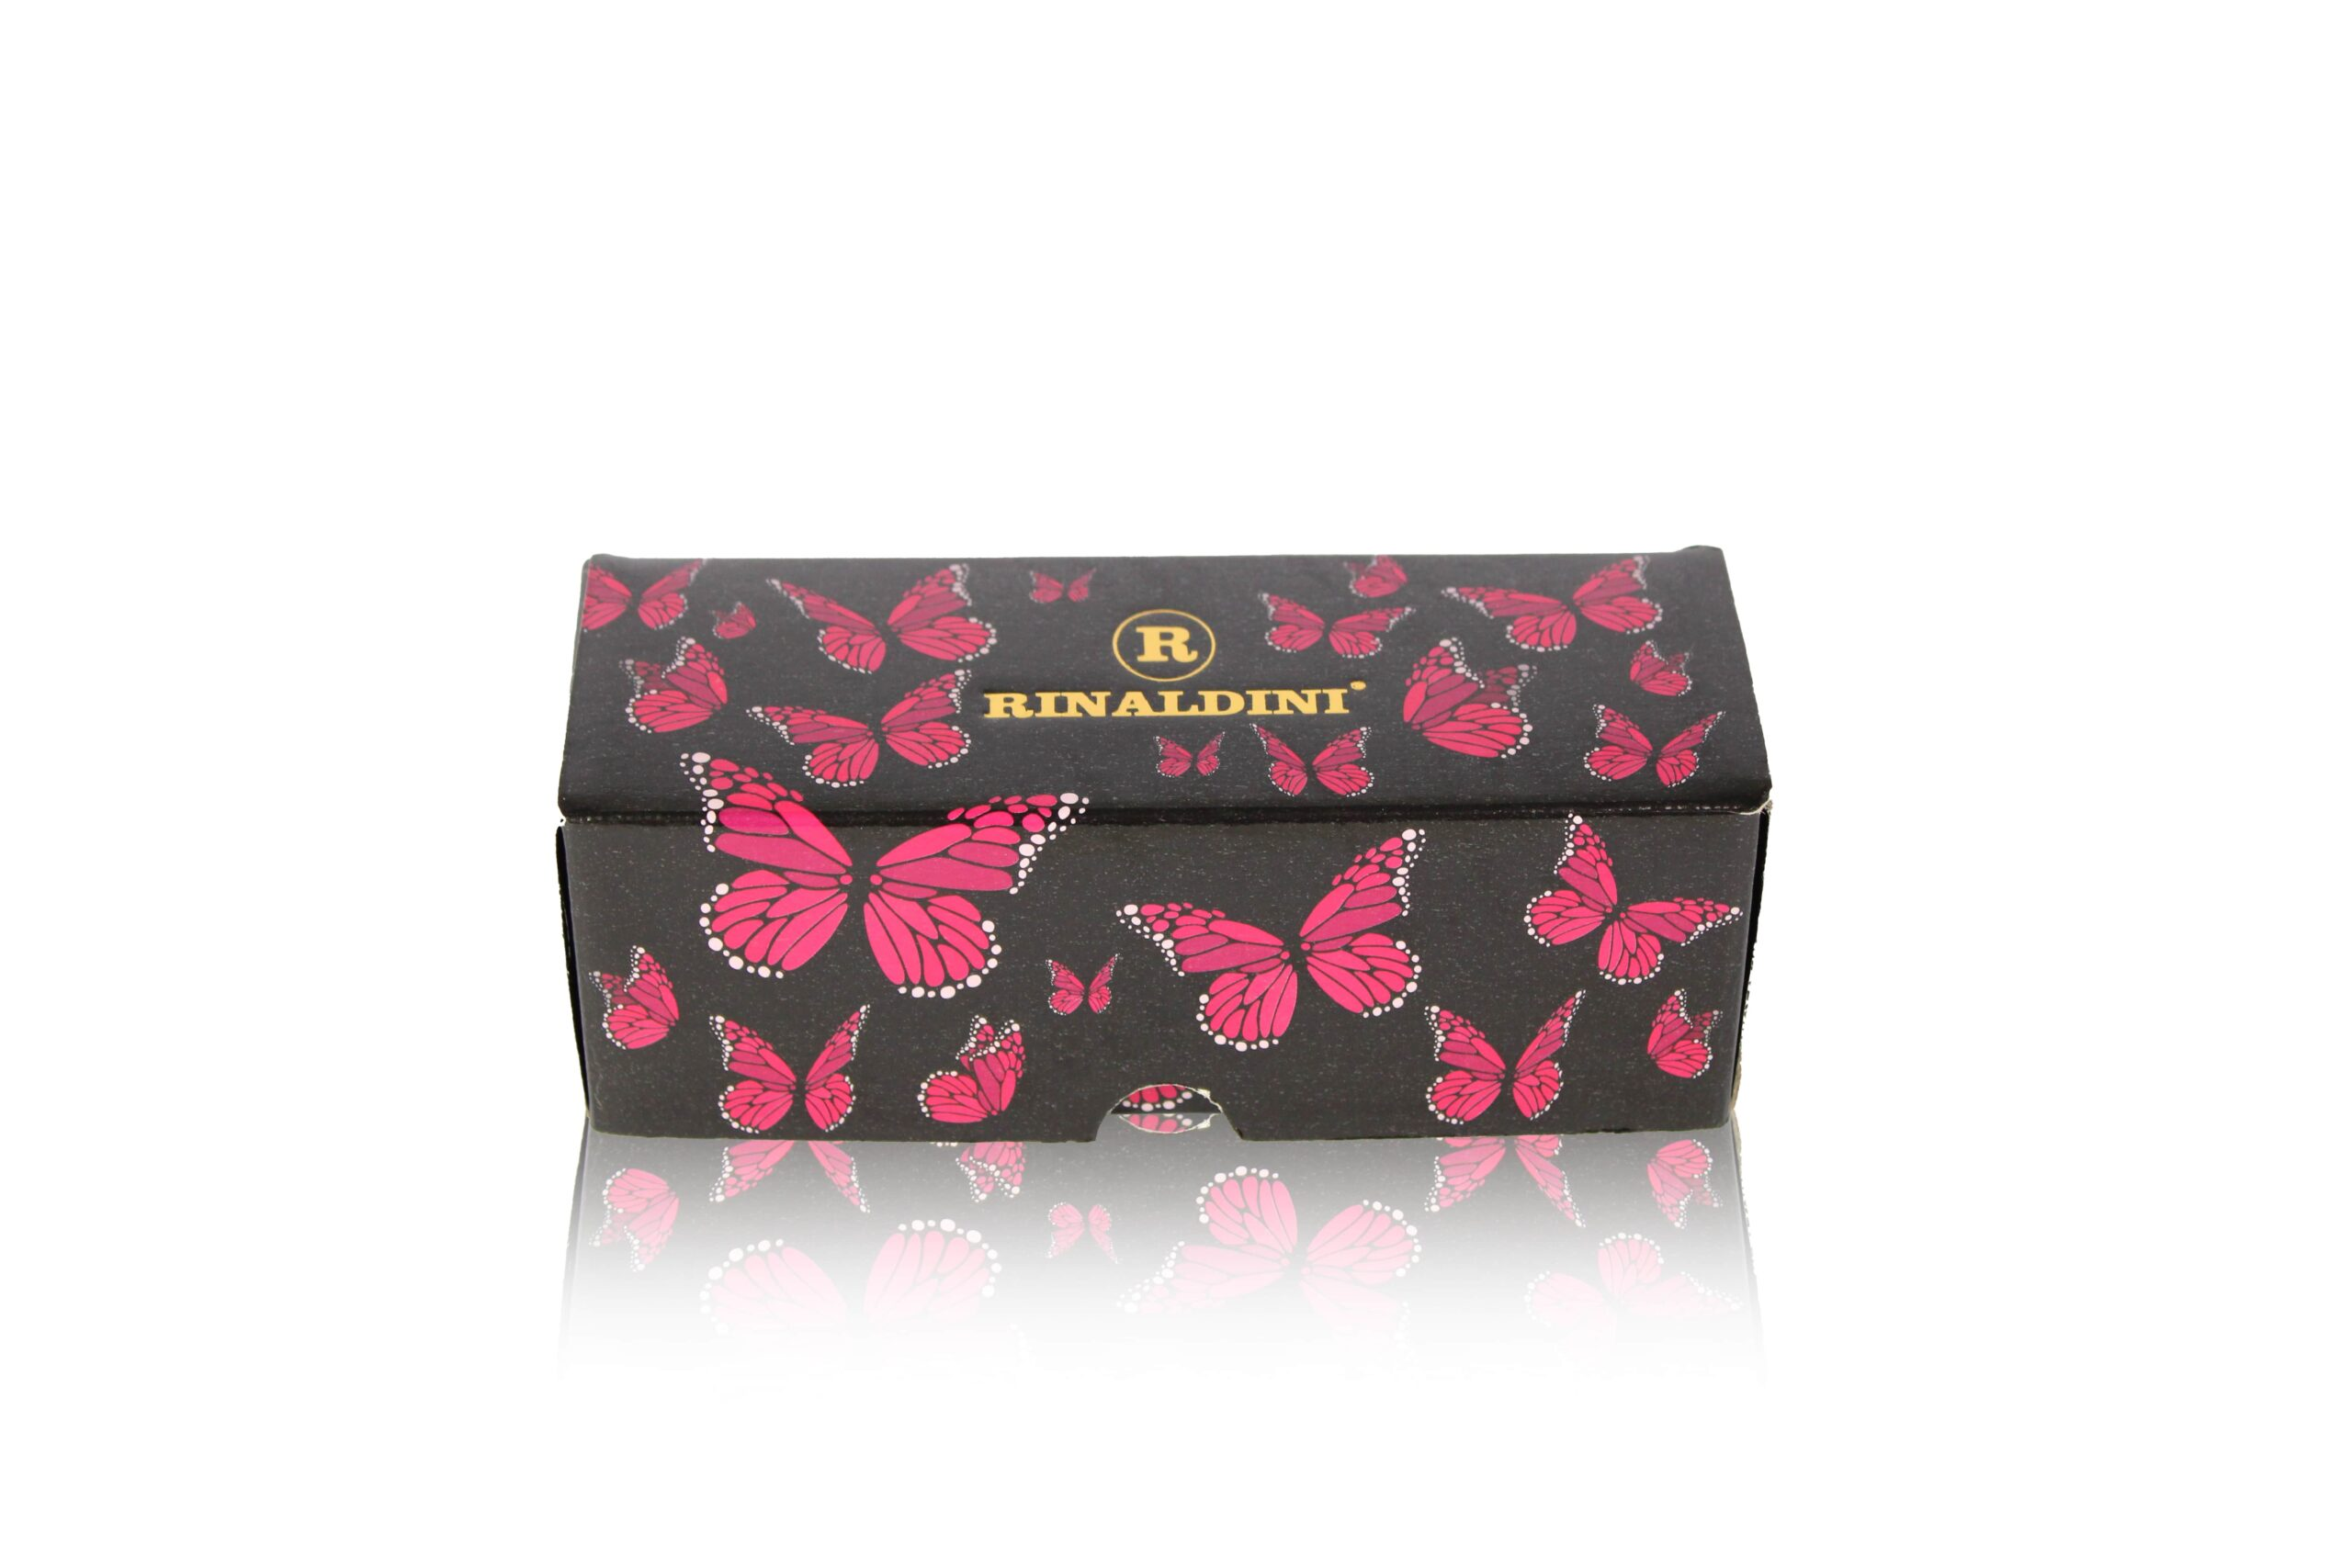 Foto Scatola MacaRAL 4pz Farfalle Fronte min scaled - Limited Edition Butterfly - MacaRAL in luxury box da #4pz